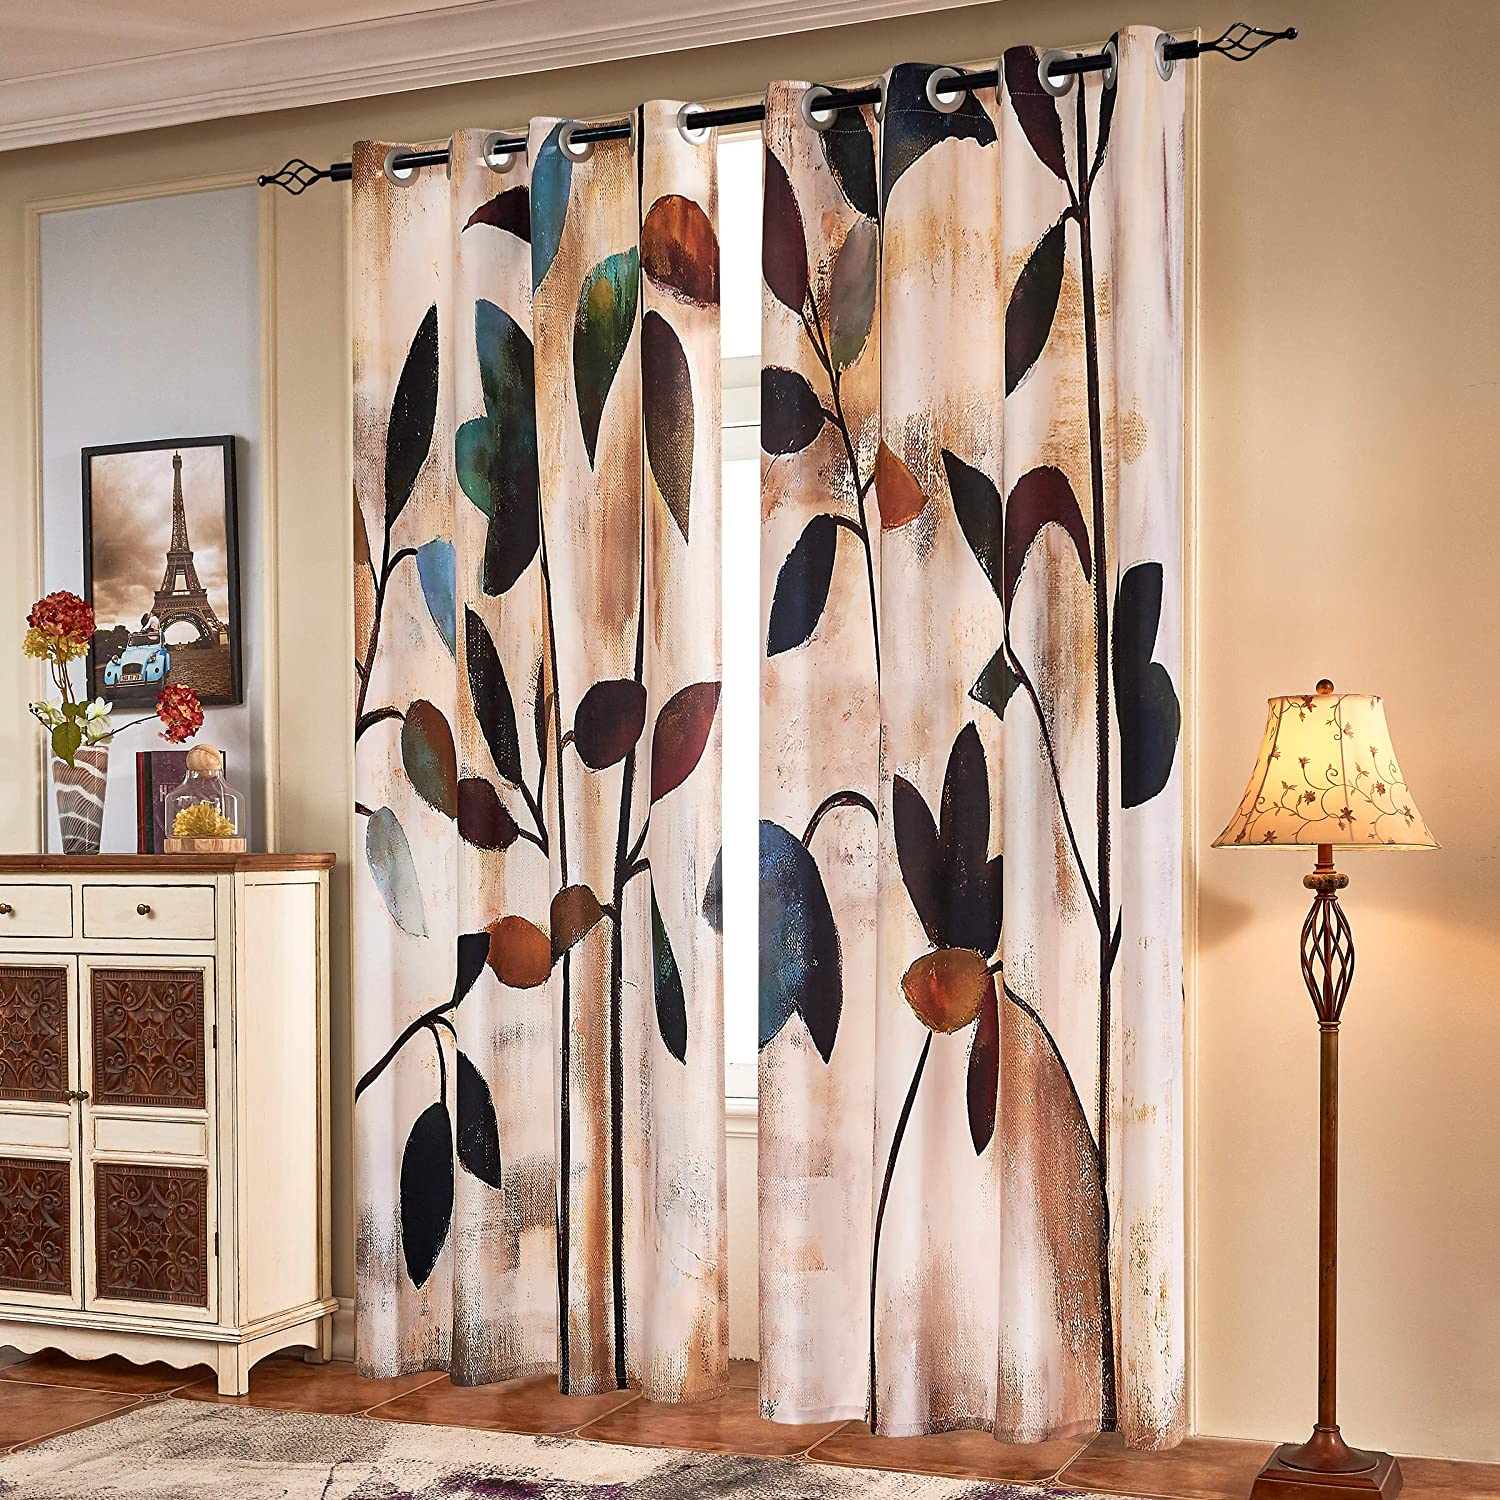 Subrtex Printed Curtains Blackout For Bedroom Living Room Kids Room Dining Room Valance Colorful Window Drapes 2 Panel Set 52 X 63 Brown Kitchen Dining